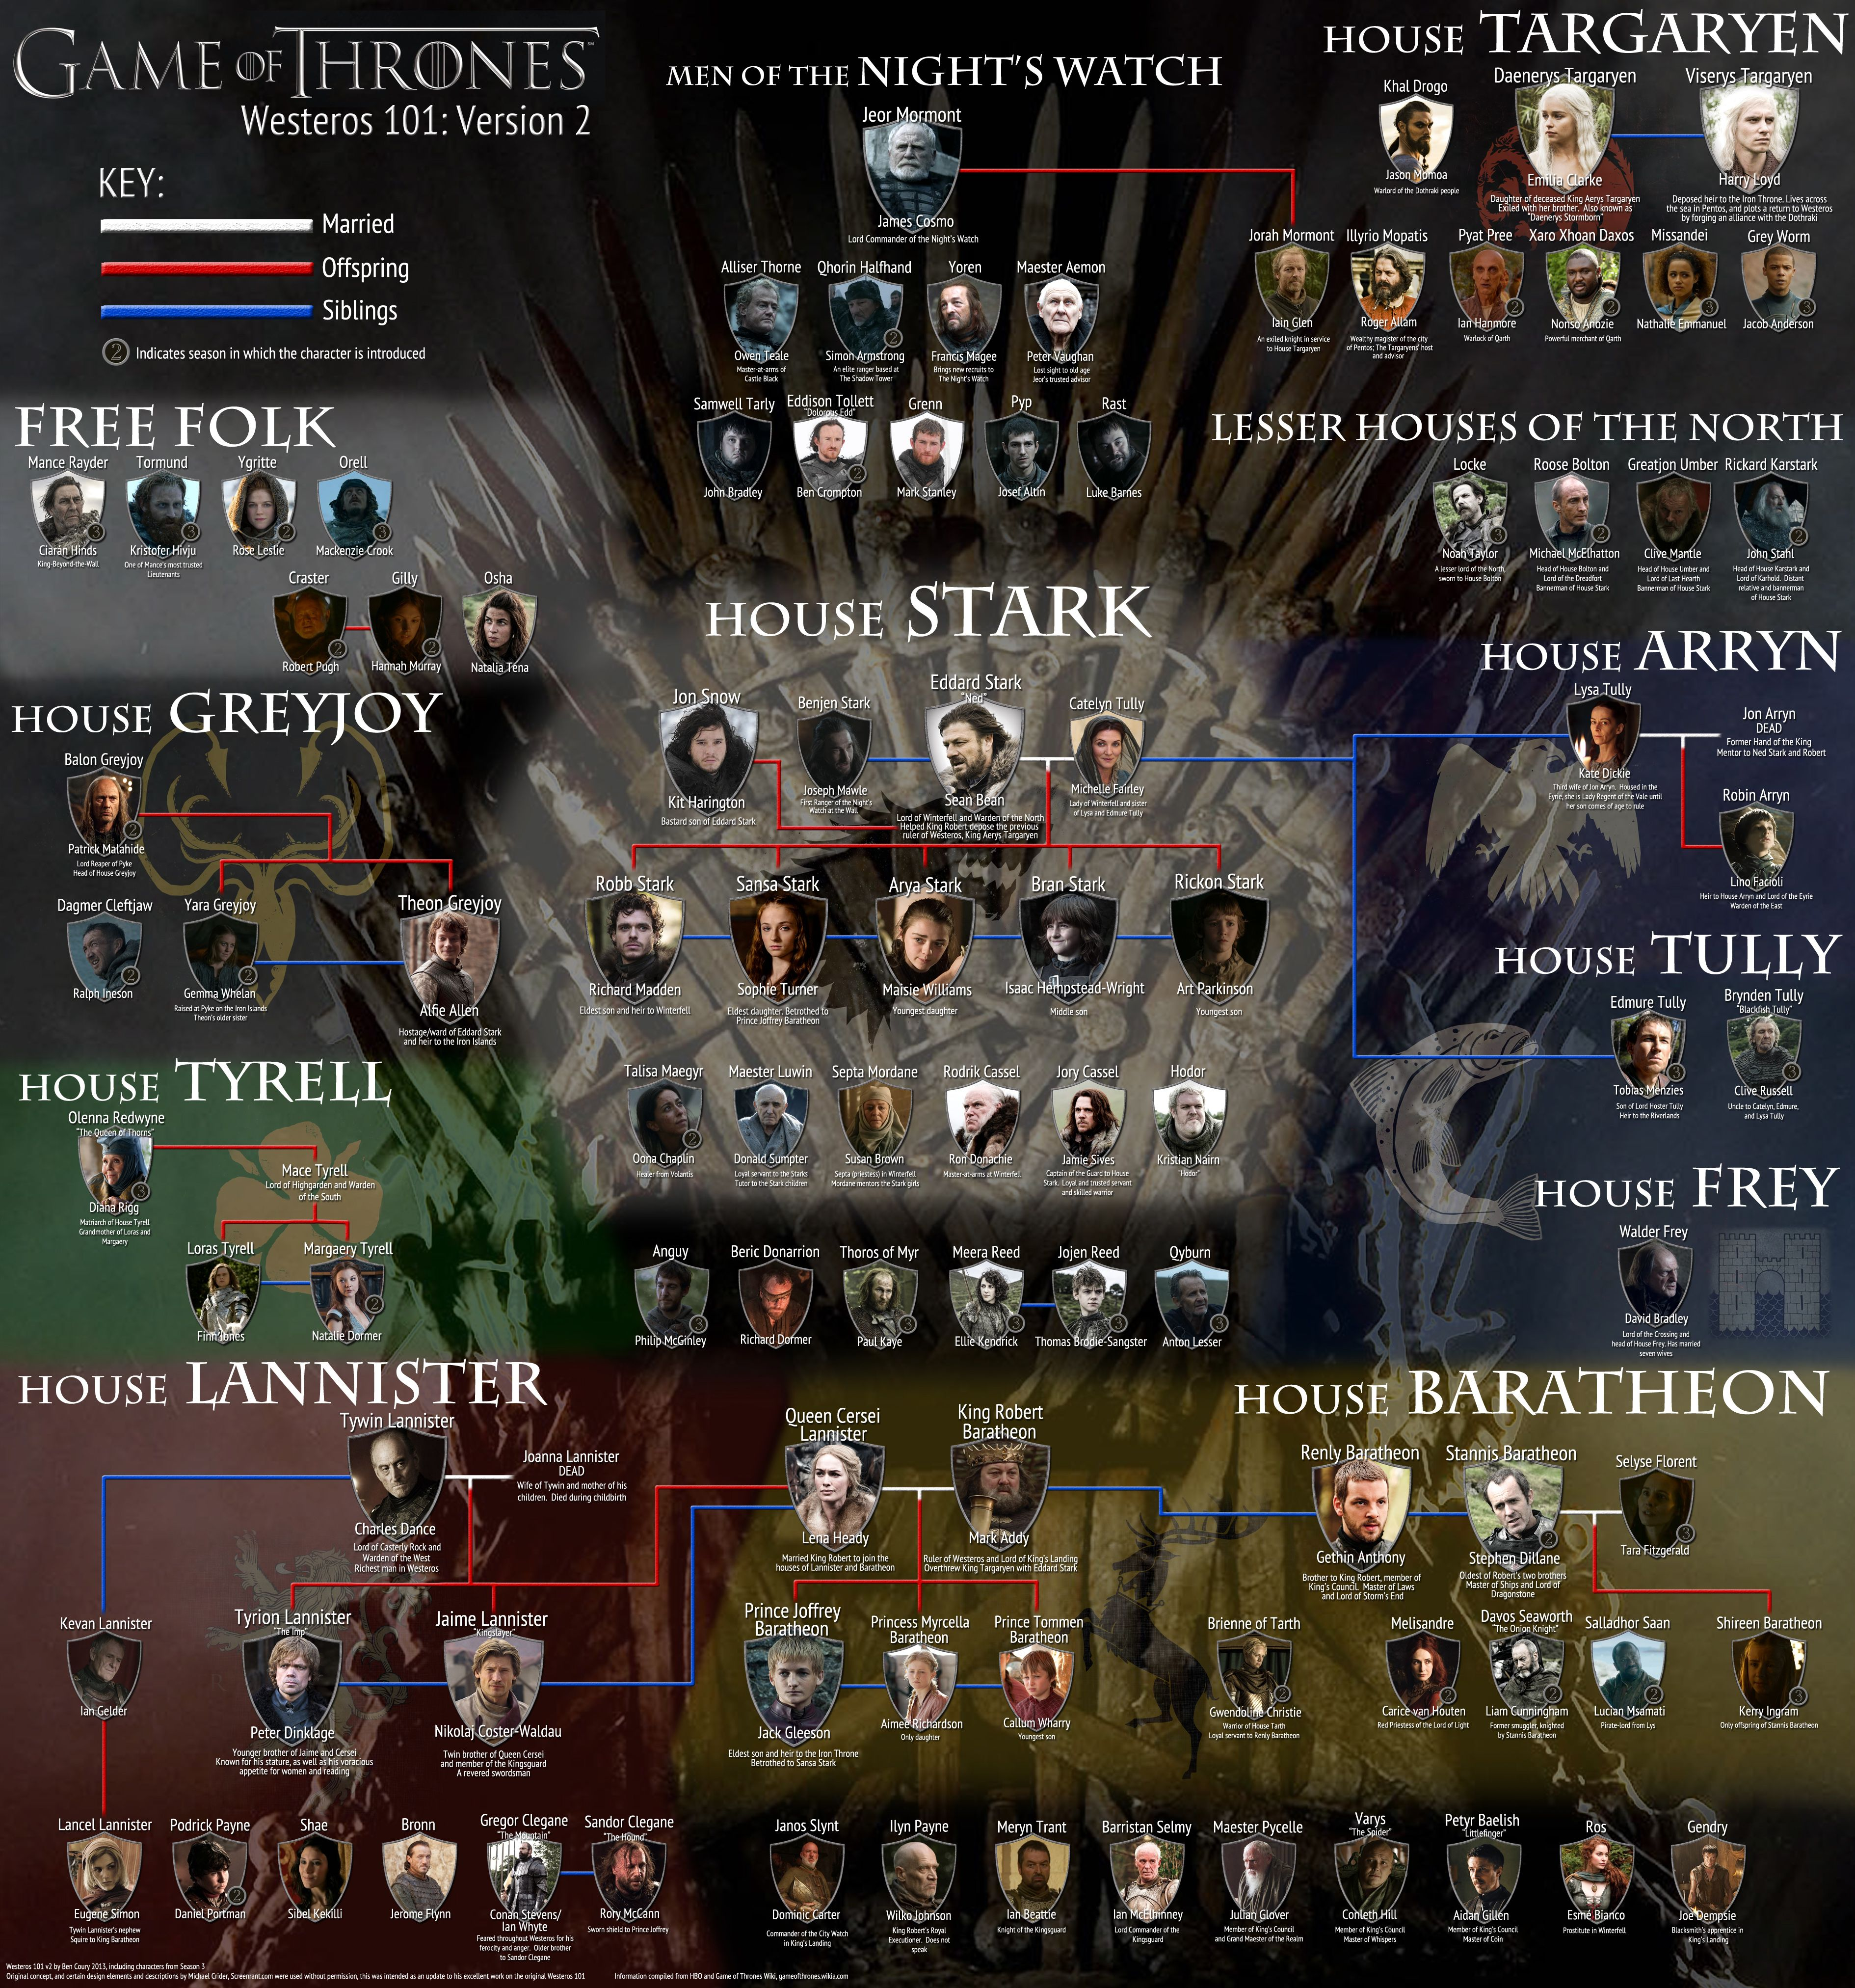 game of thrones literature A game of thrones summary & study guide includes detailed chapter summaries and analysis, quotes, character descriptions, themes, and more.